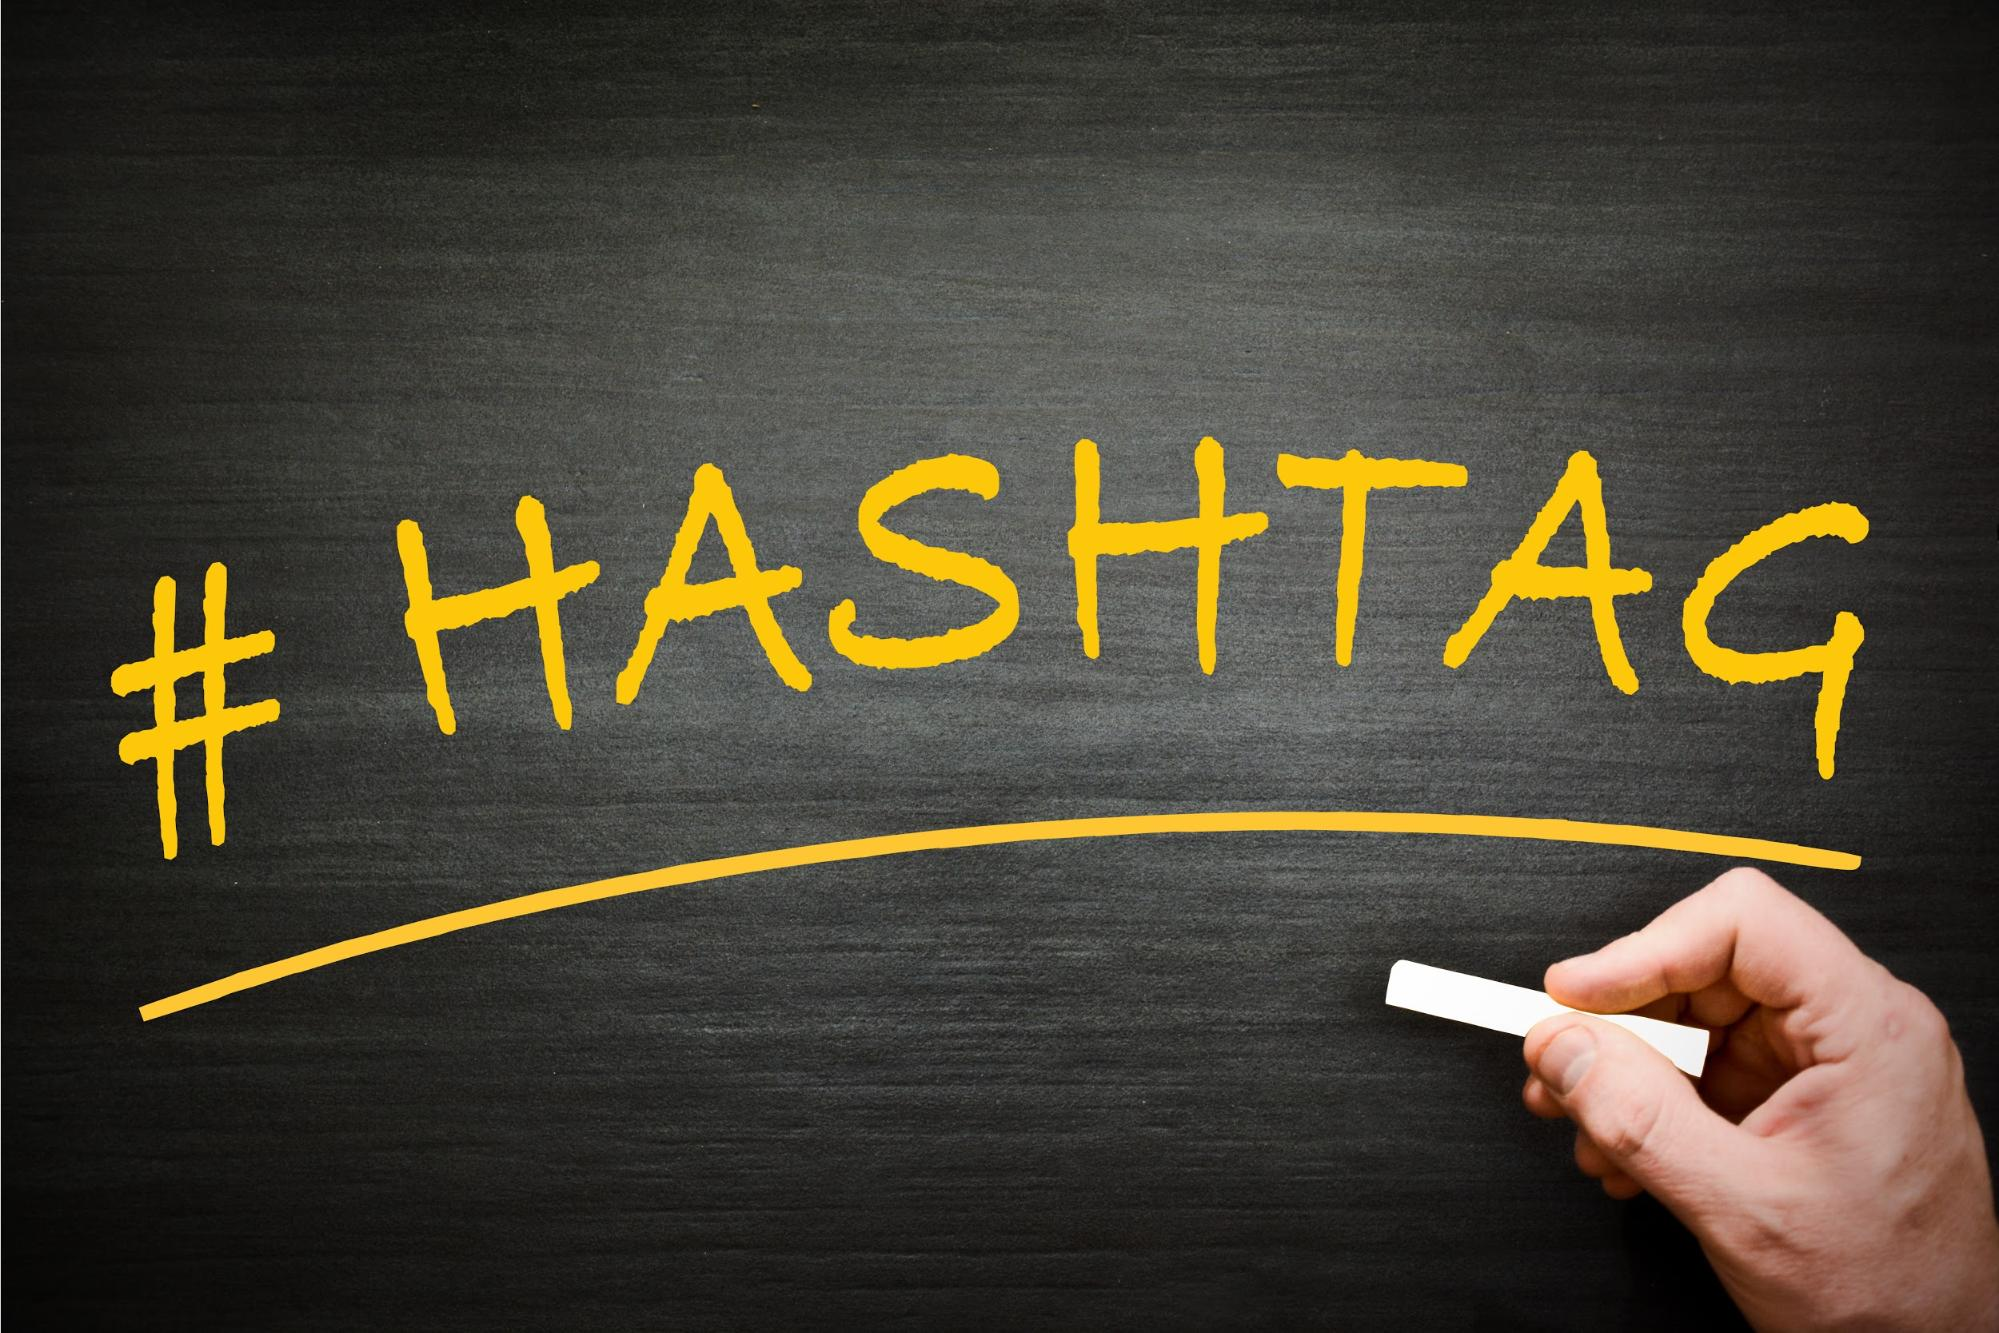 5. Use Twitter hashtags.